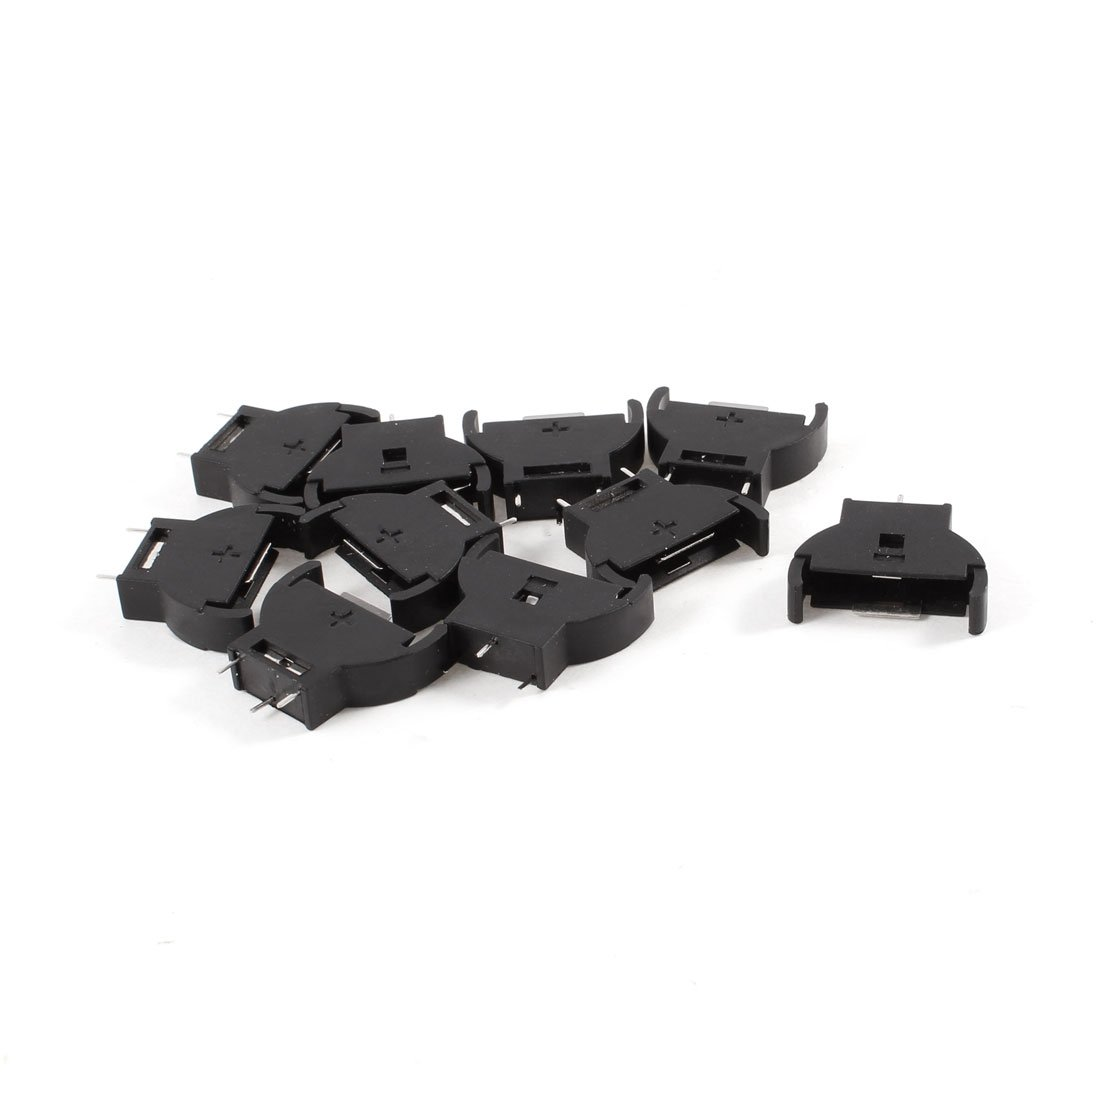 Brand New 10 Pieces Plastic Shell CR2032 <font><b>Button</b></font> <font><b>Cell</b></font> <font><b>Battery</b></font> Sockets <font><b>Holder</b></font> Case Black